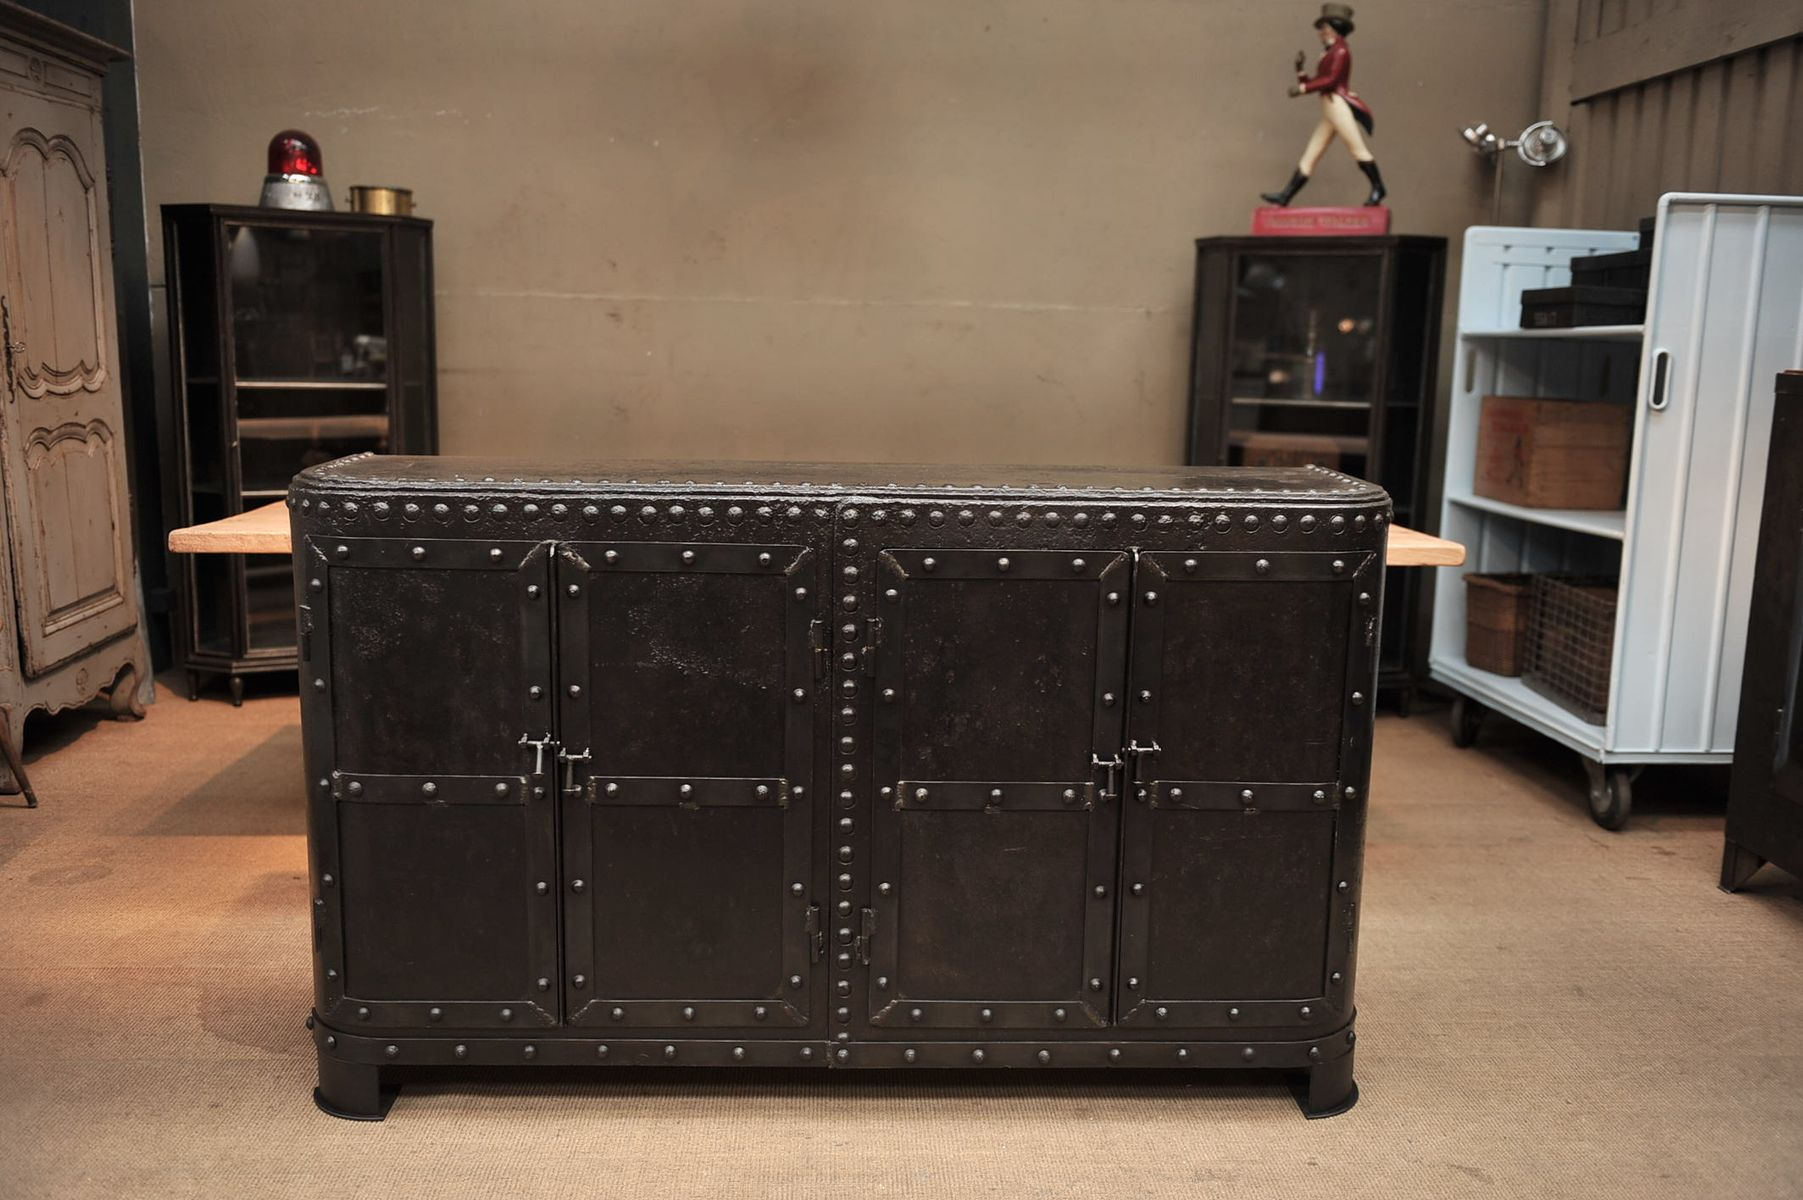 armoire industrielle en fer rivet france 1900s en vente. Black Bedroom Furniture Sets. Home Design Ideas